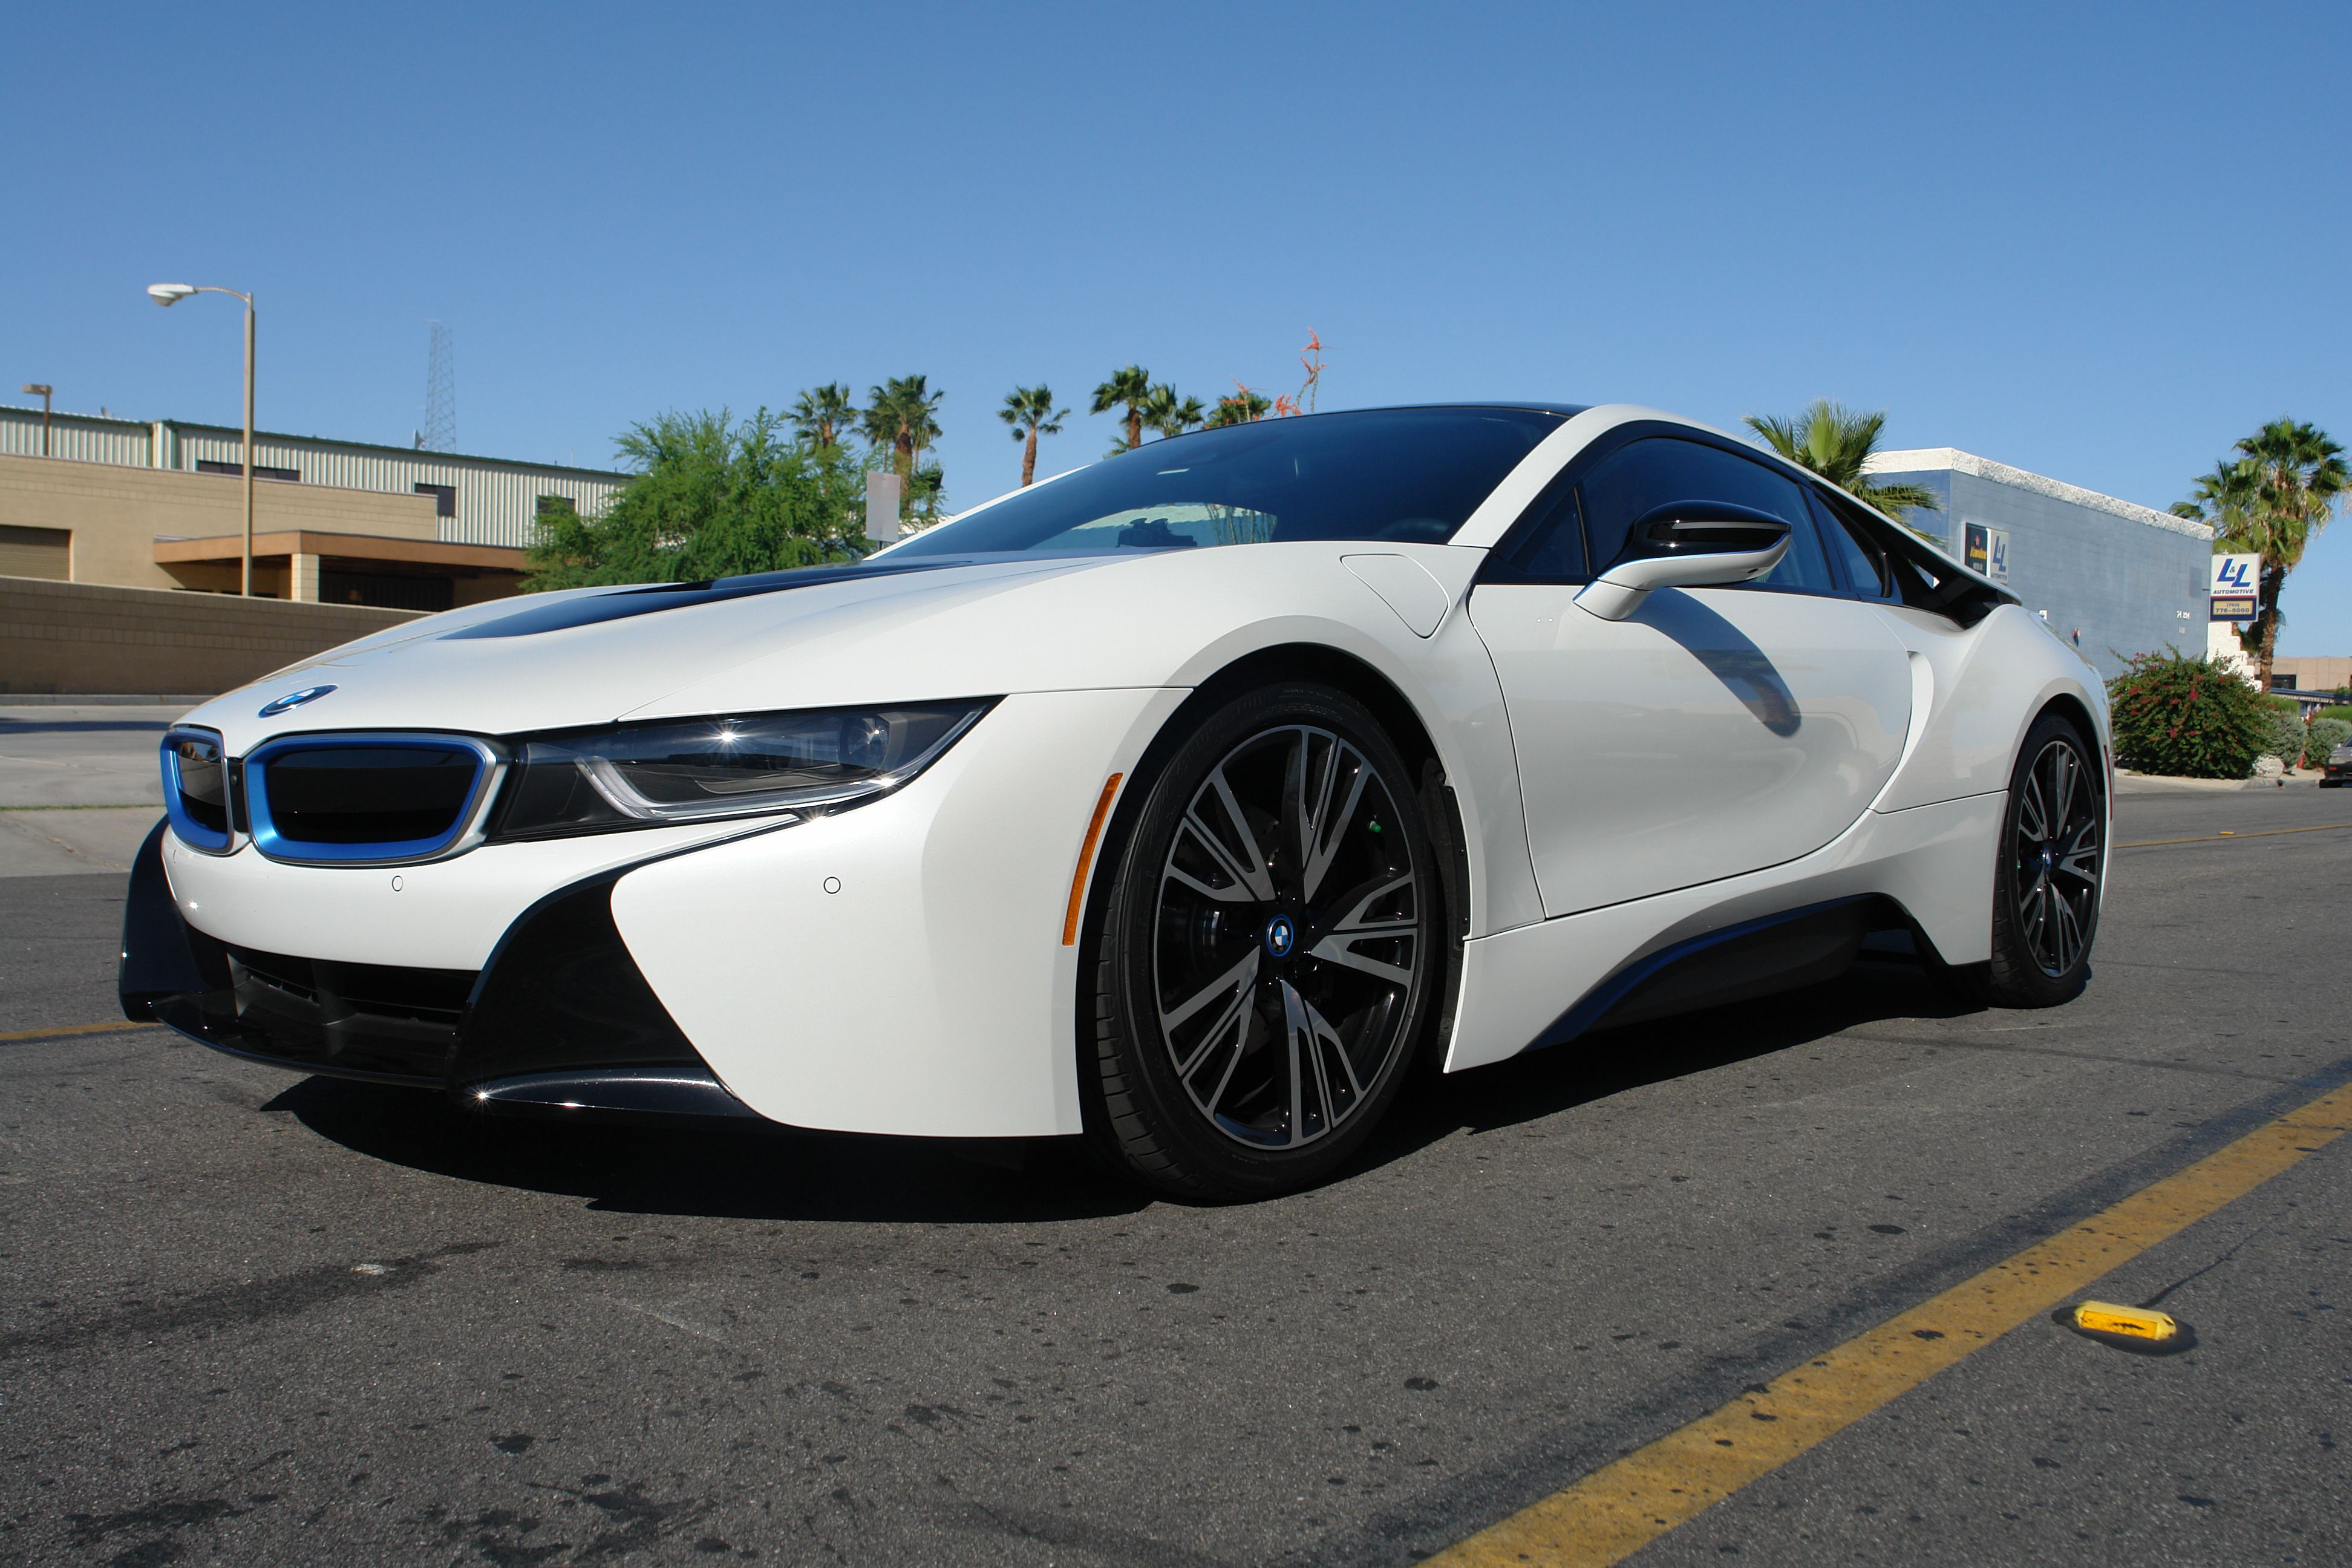 and diego size october name image touring larger views san click bolts ca a for discussion vbulletin bmw jpg version autocross nuts